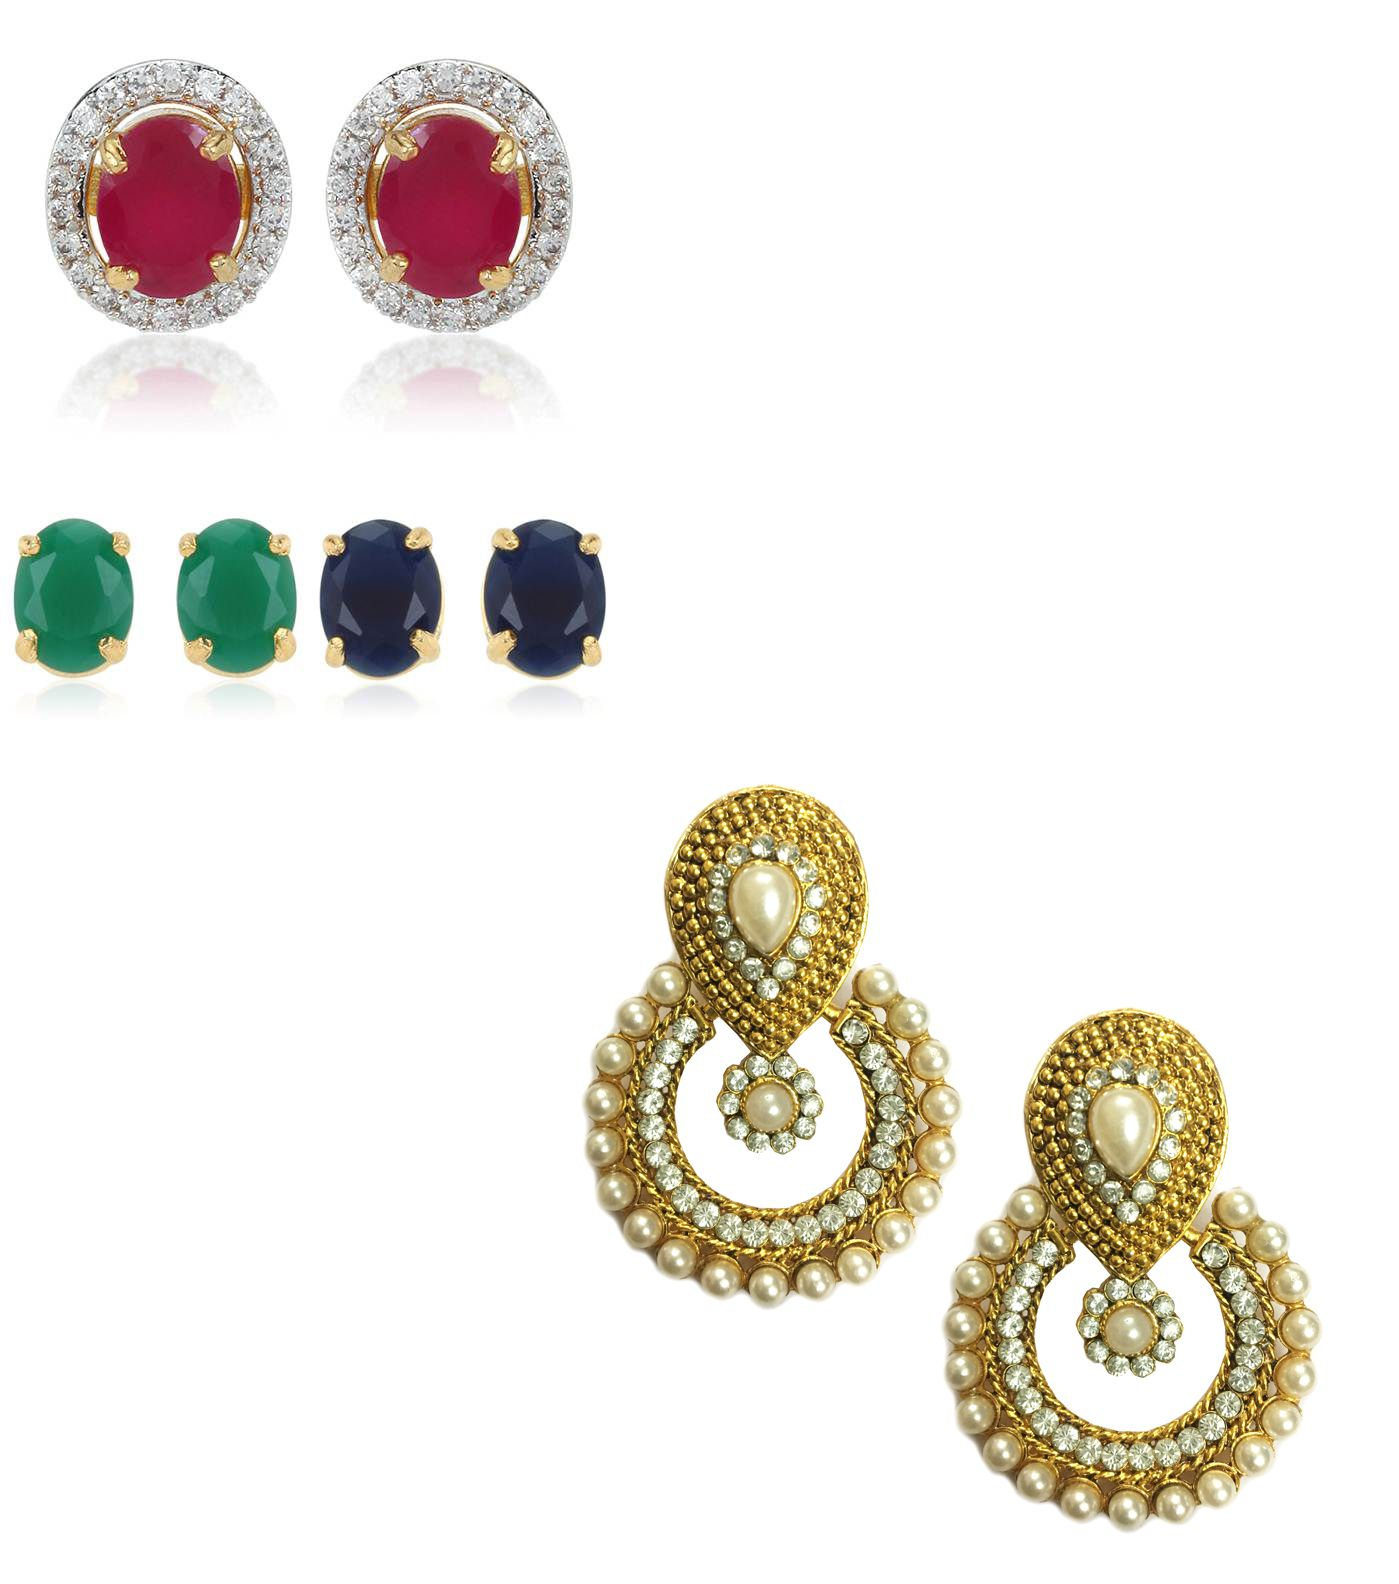 Youbella Multicolour Alloy Stud Earrings Combo Of 6 In 1